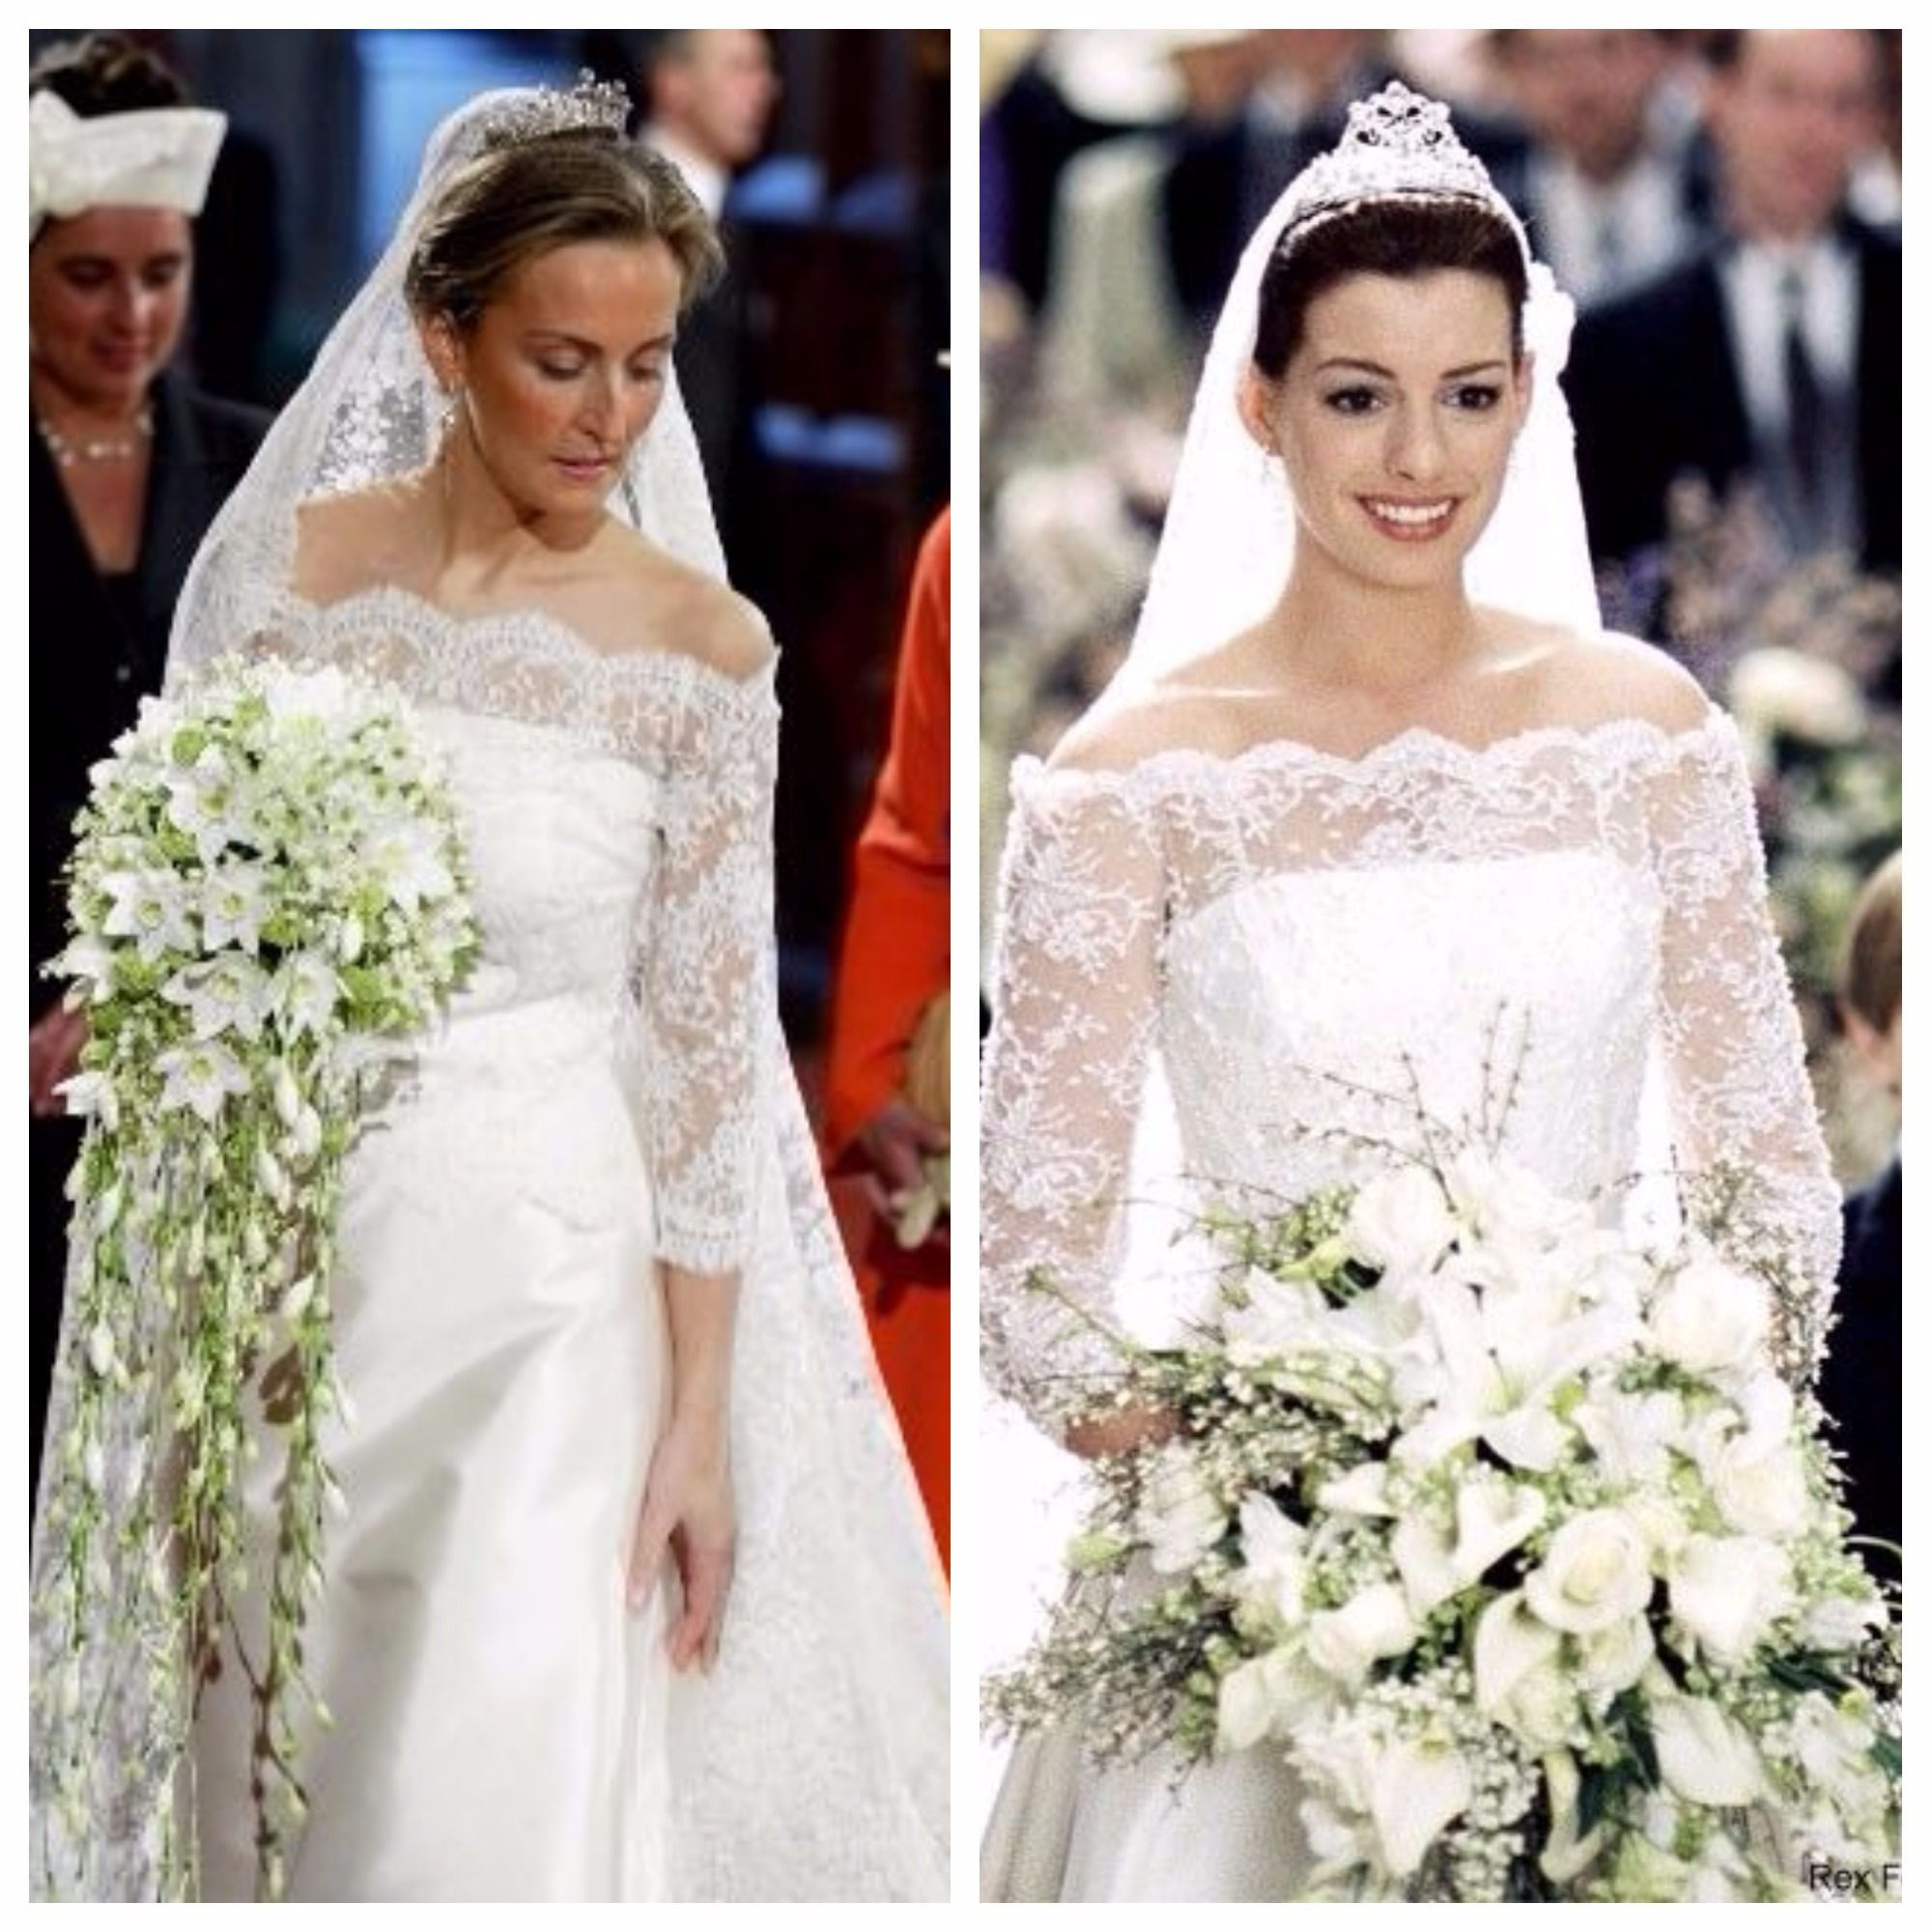 Princess Claire of Belgium at her 2003 Wedding in a dress